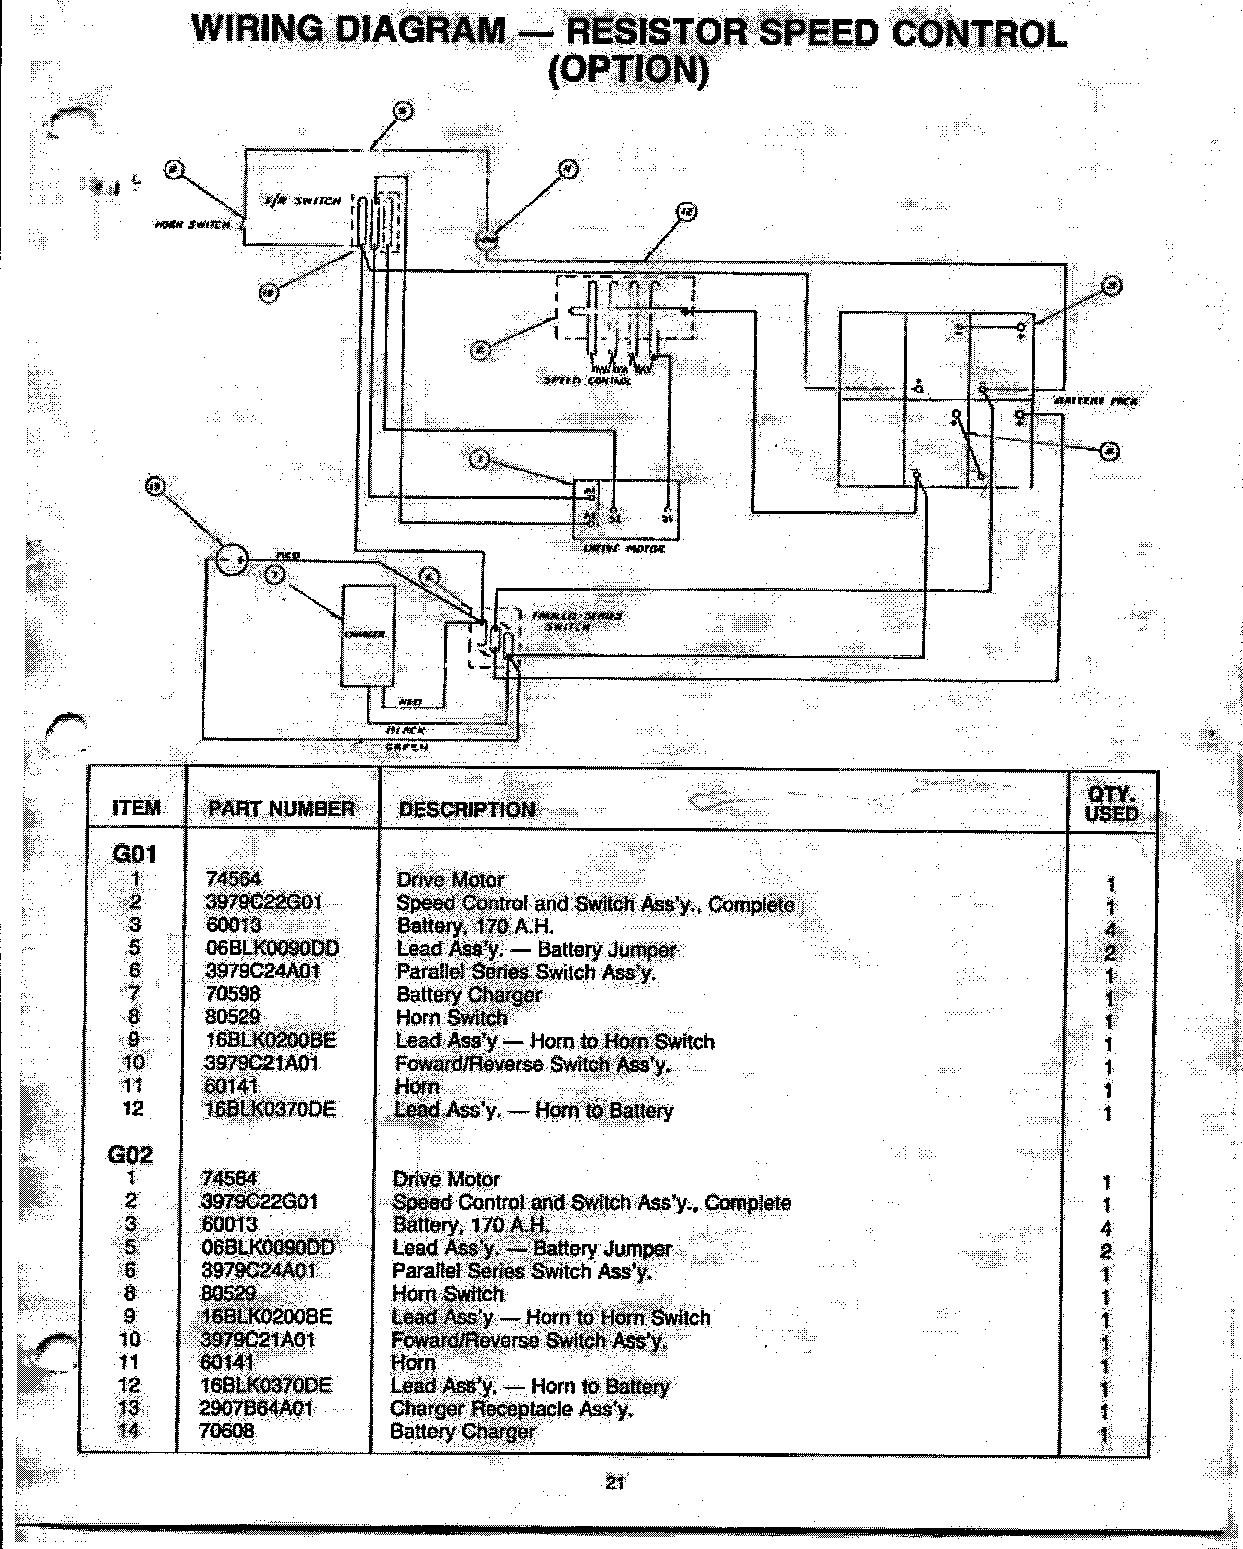 taylor dunn et 150 wiring diagram battery wiring library Taylor Parts Manual nordskog323_option taylor dunn b2 wiring diagram dolgular com taylor dunn wiring diagram pdf